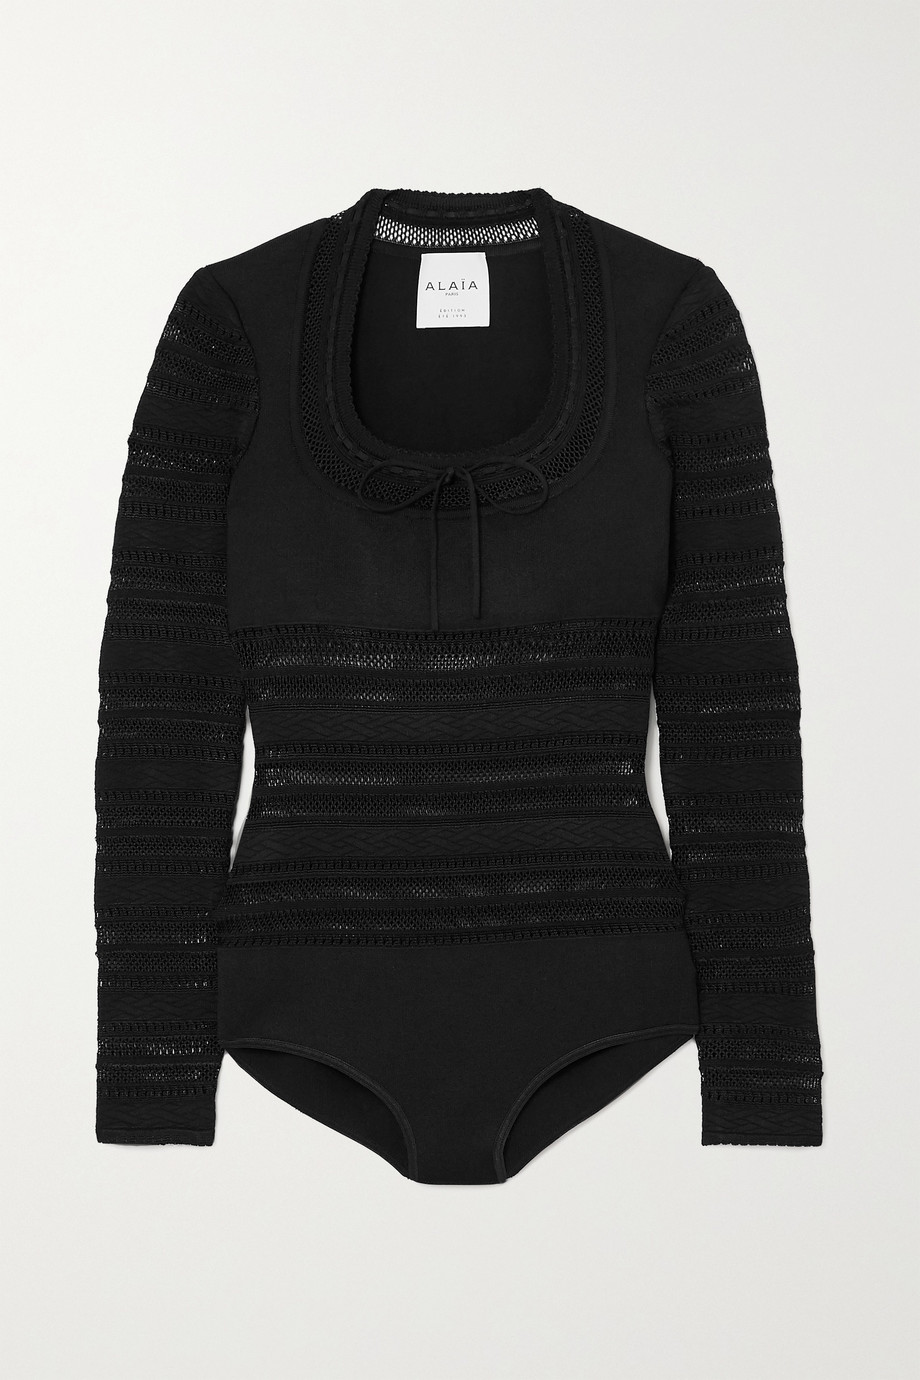 Alaïa Editions bow-detailed open-knit bodysuit